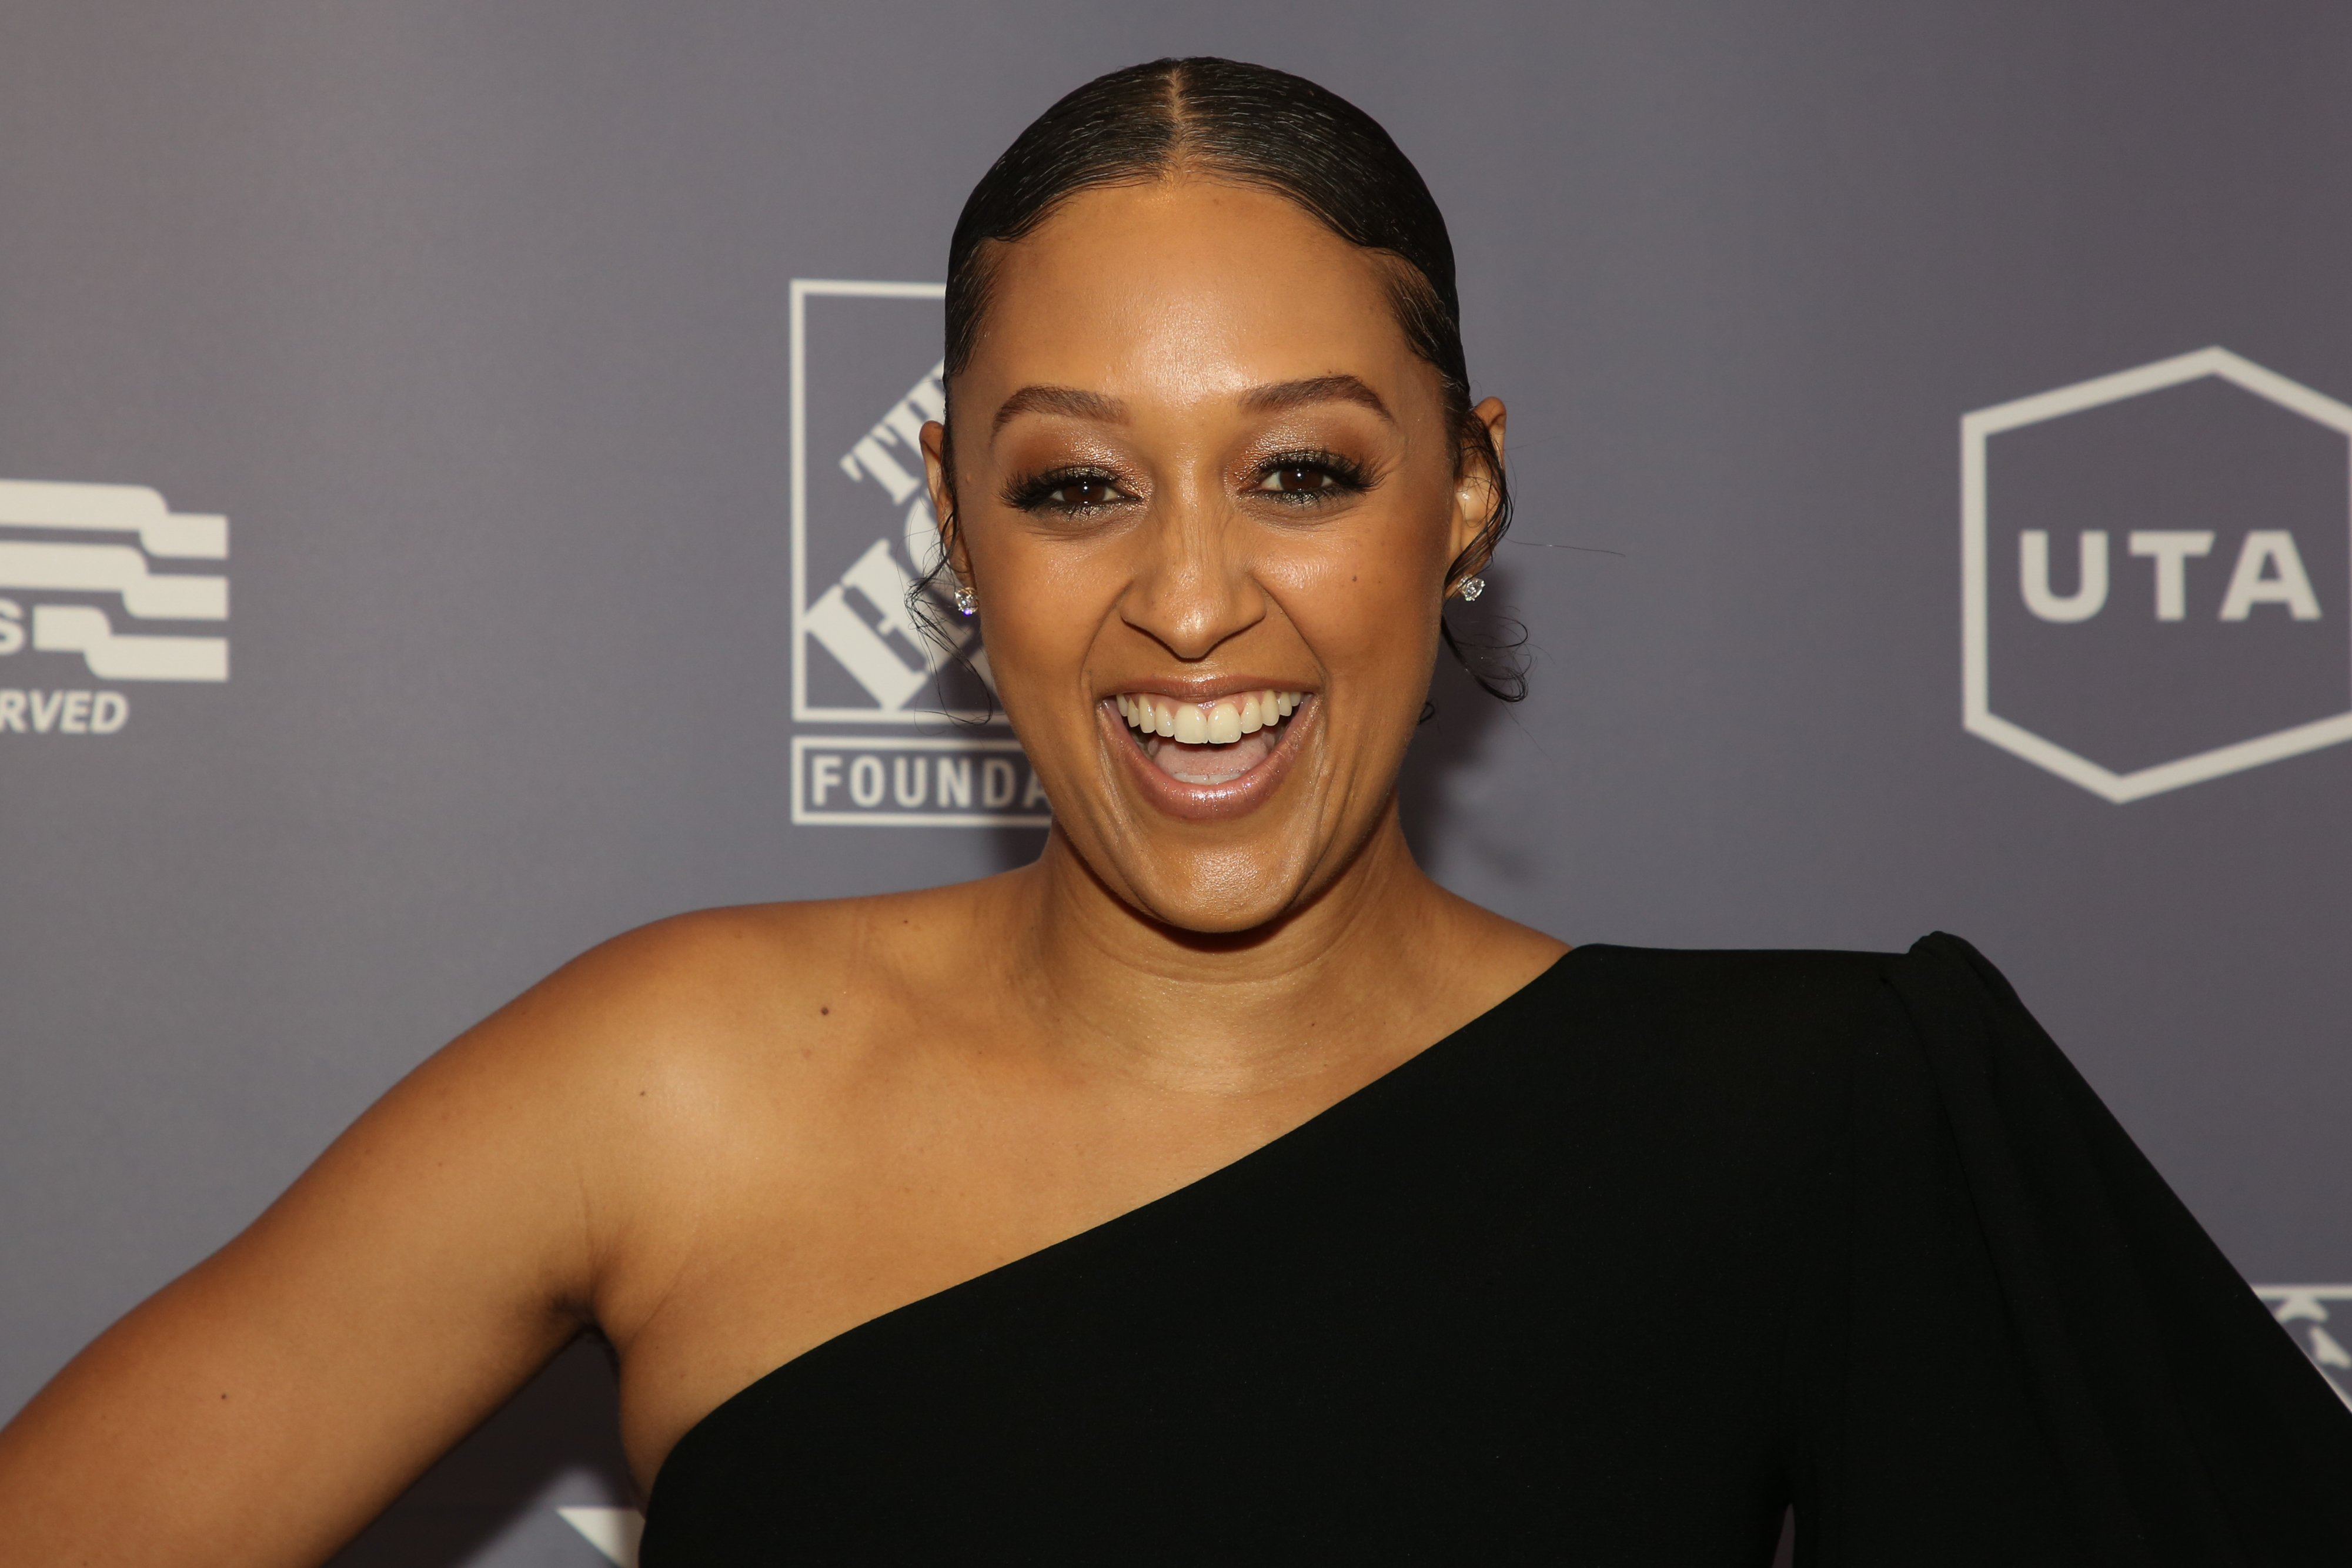 Tia Mowry pictured at the 2019 US Vets Salute Gala at The Beverly Hilton Hotel on November 05, 2019 in Beverly Hills, California. | Source: Getty Images